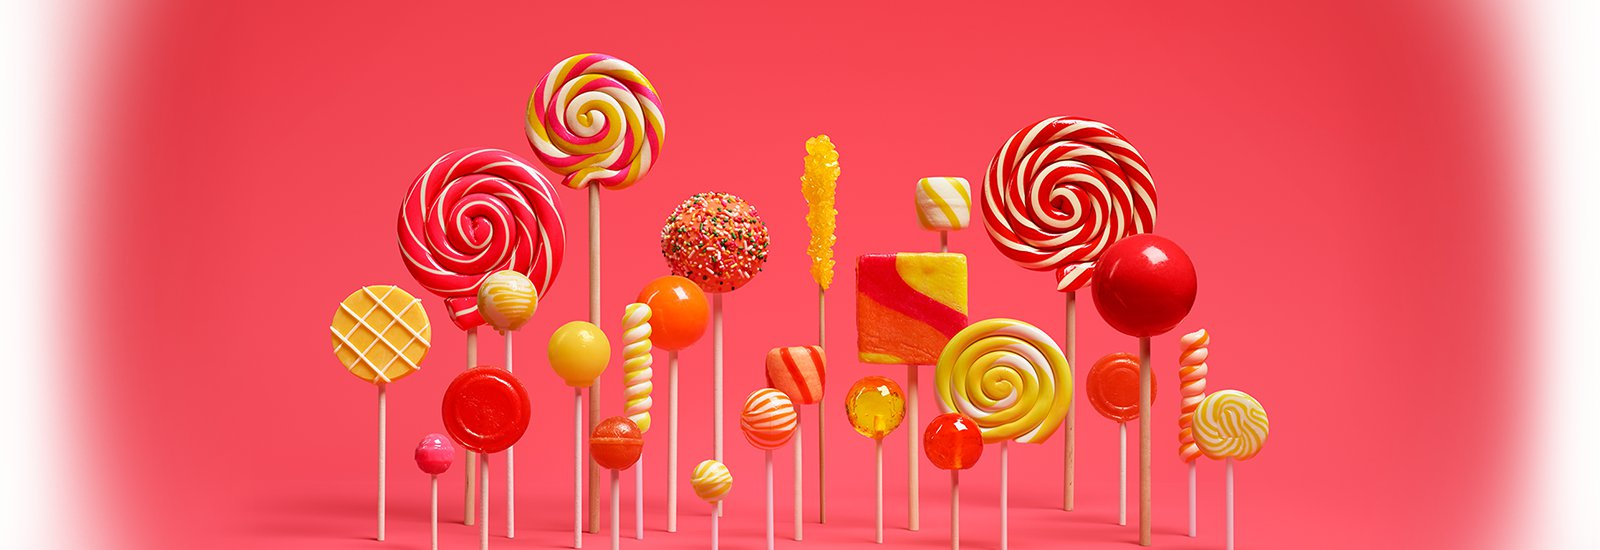 New Features On Android 5.0 Lollipop